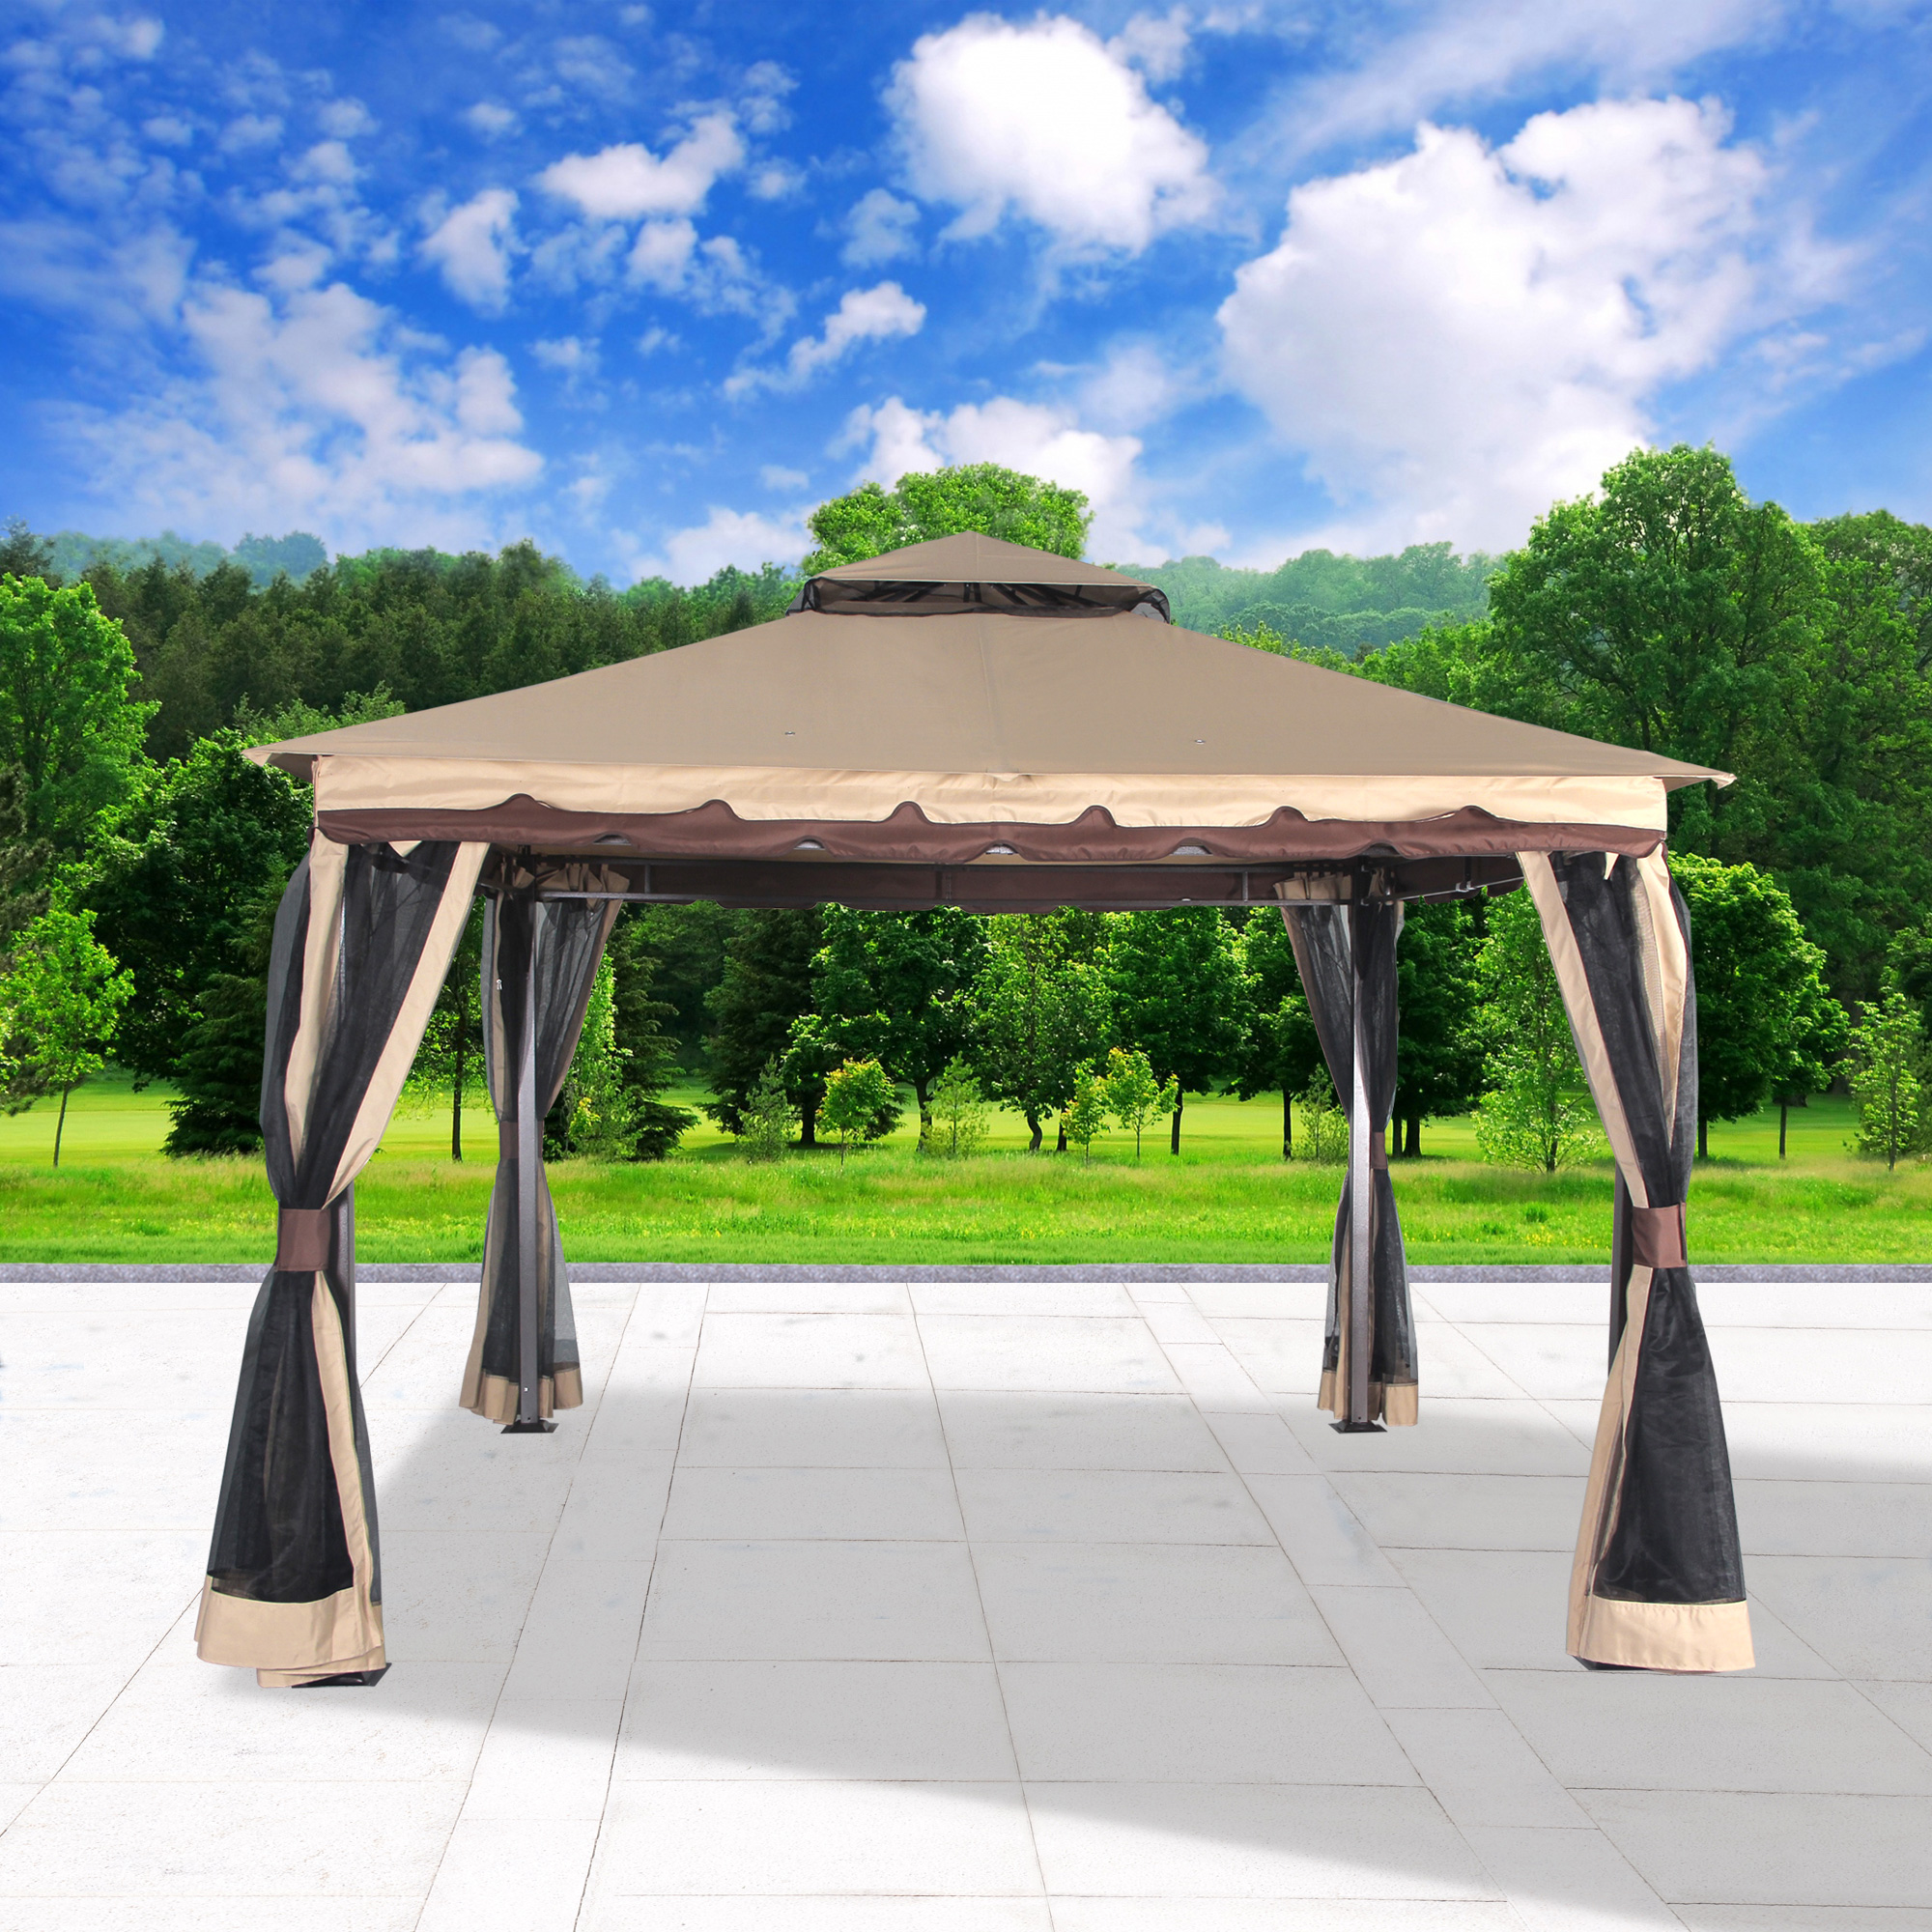 "Cloud Mountain Garden Gazebo Polyester Fabric 130"" x 130"" Patio Backyard Double... by Cloud Mountain"